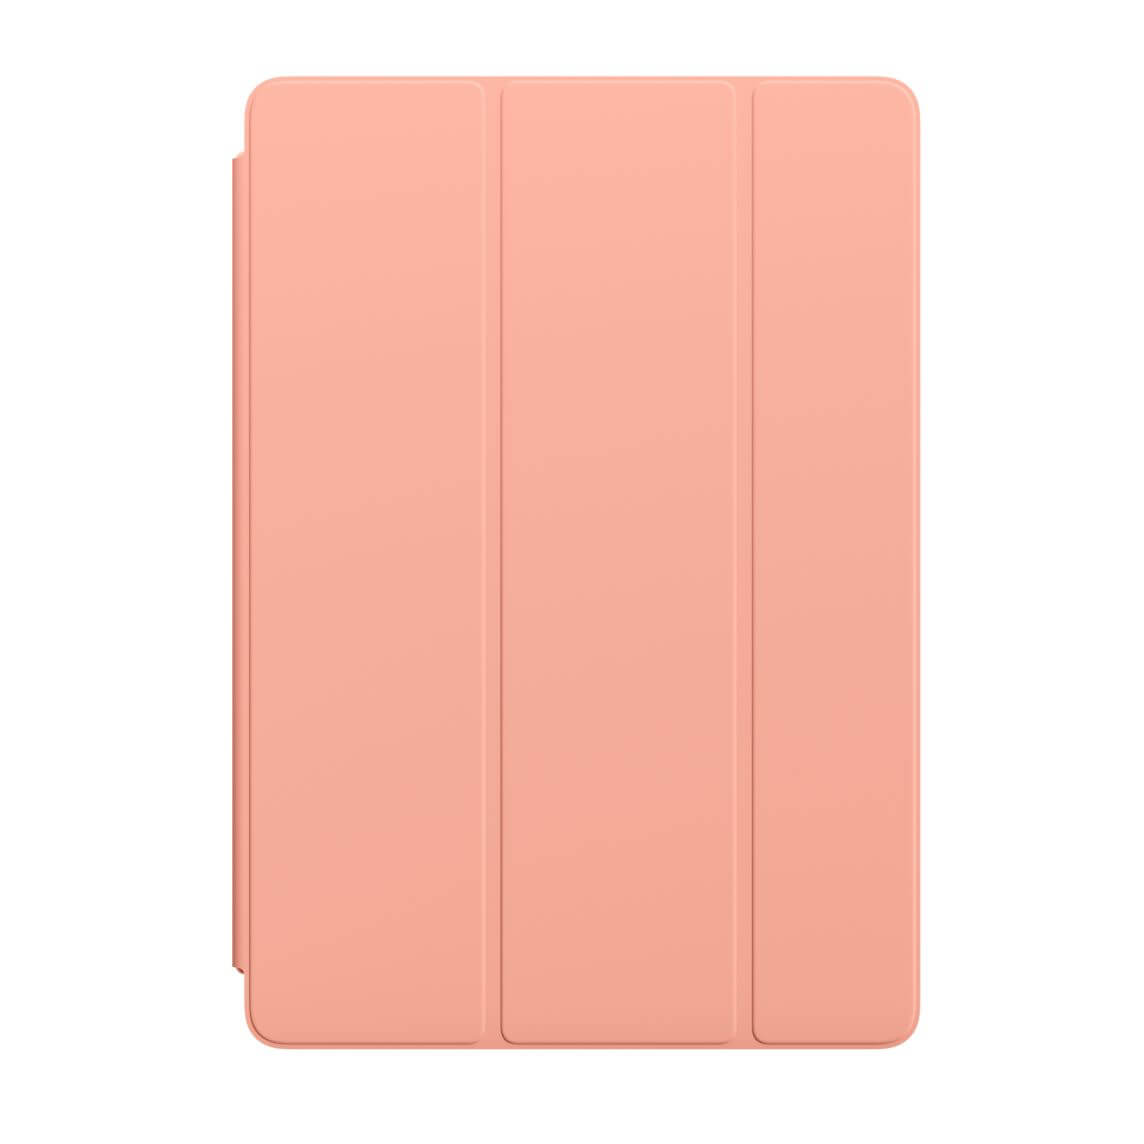 Smart Cover 10,5 tuuman iPad Prolle - flamingo